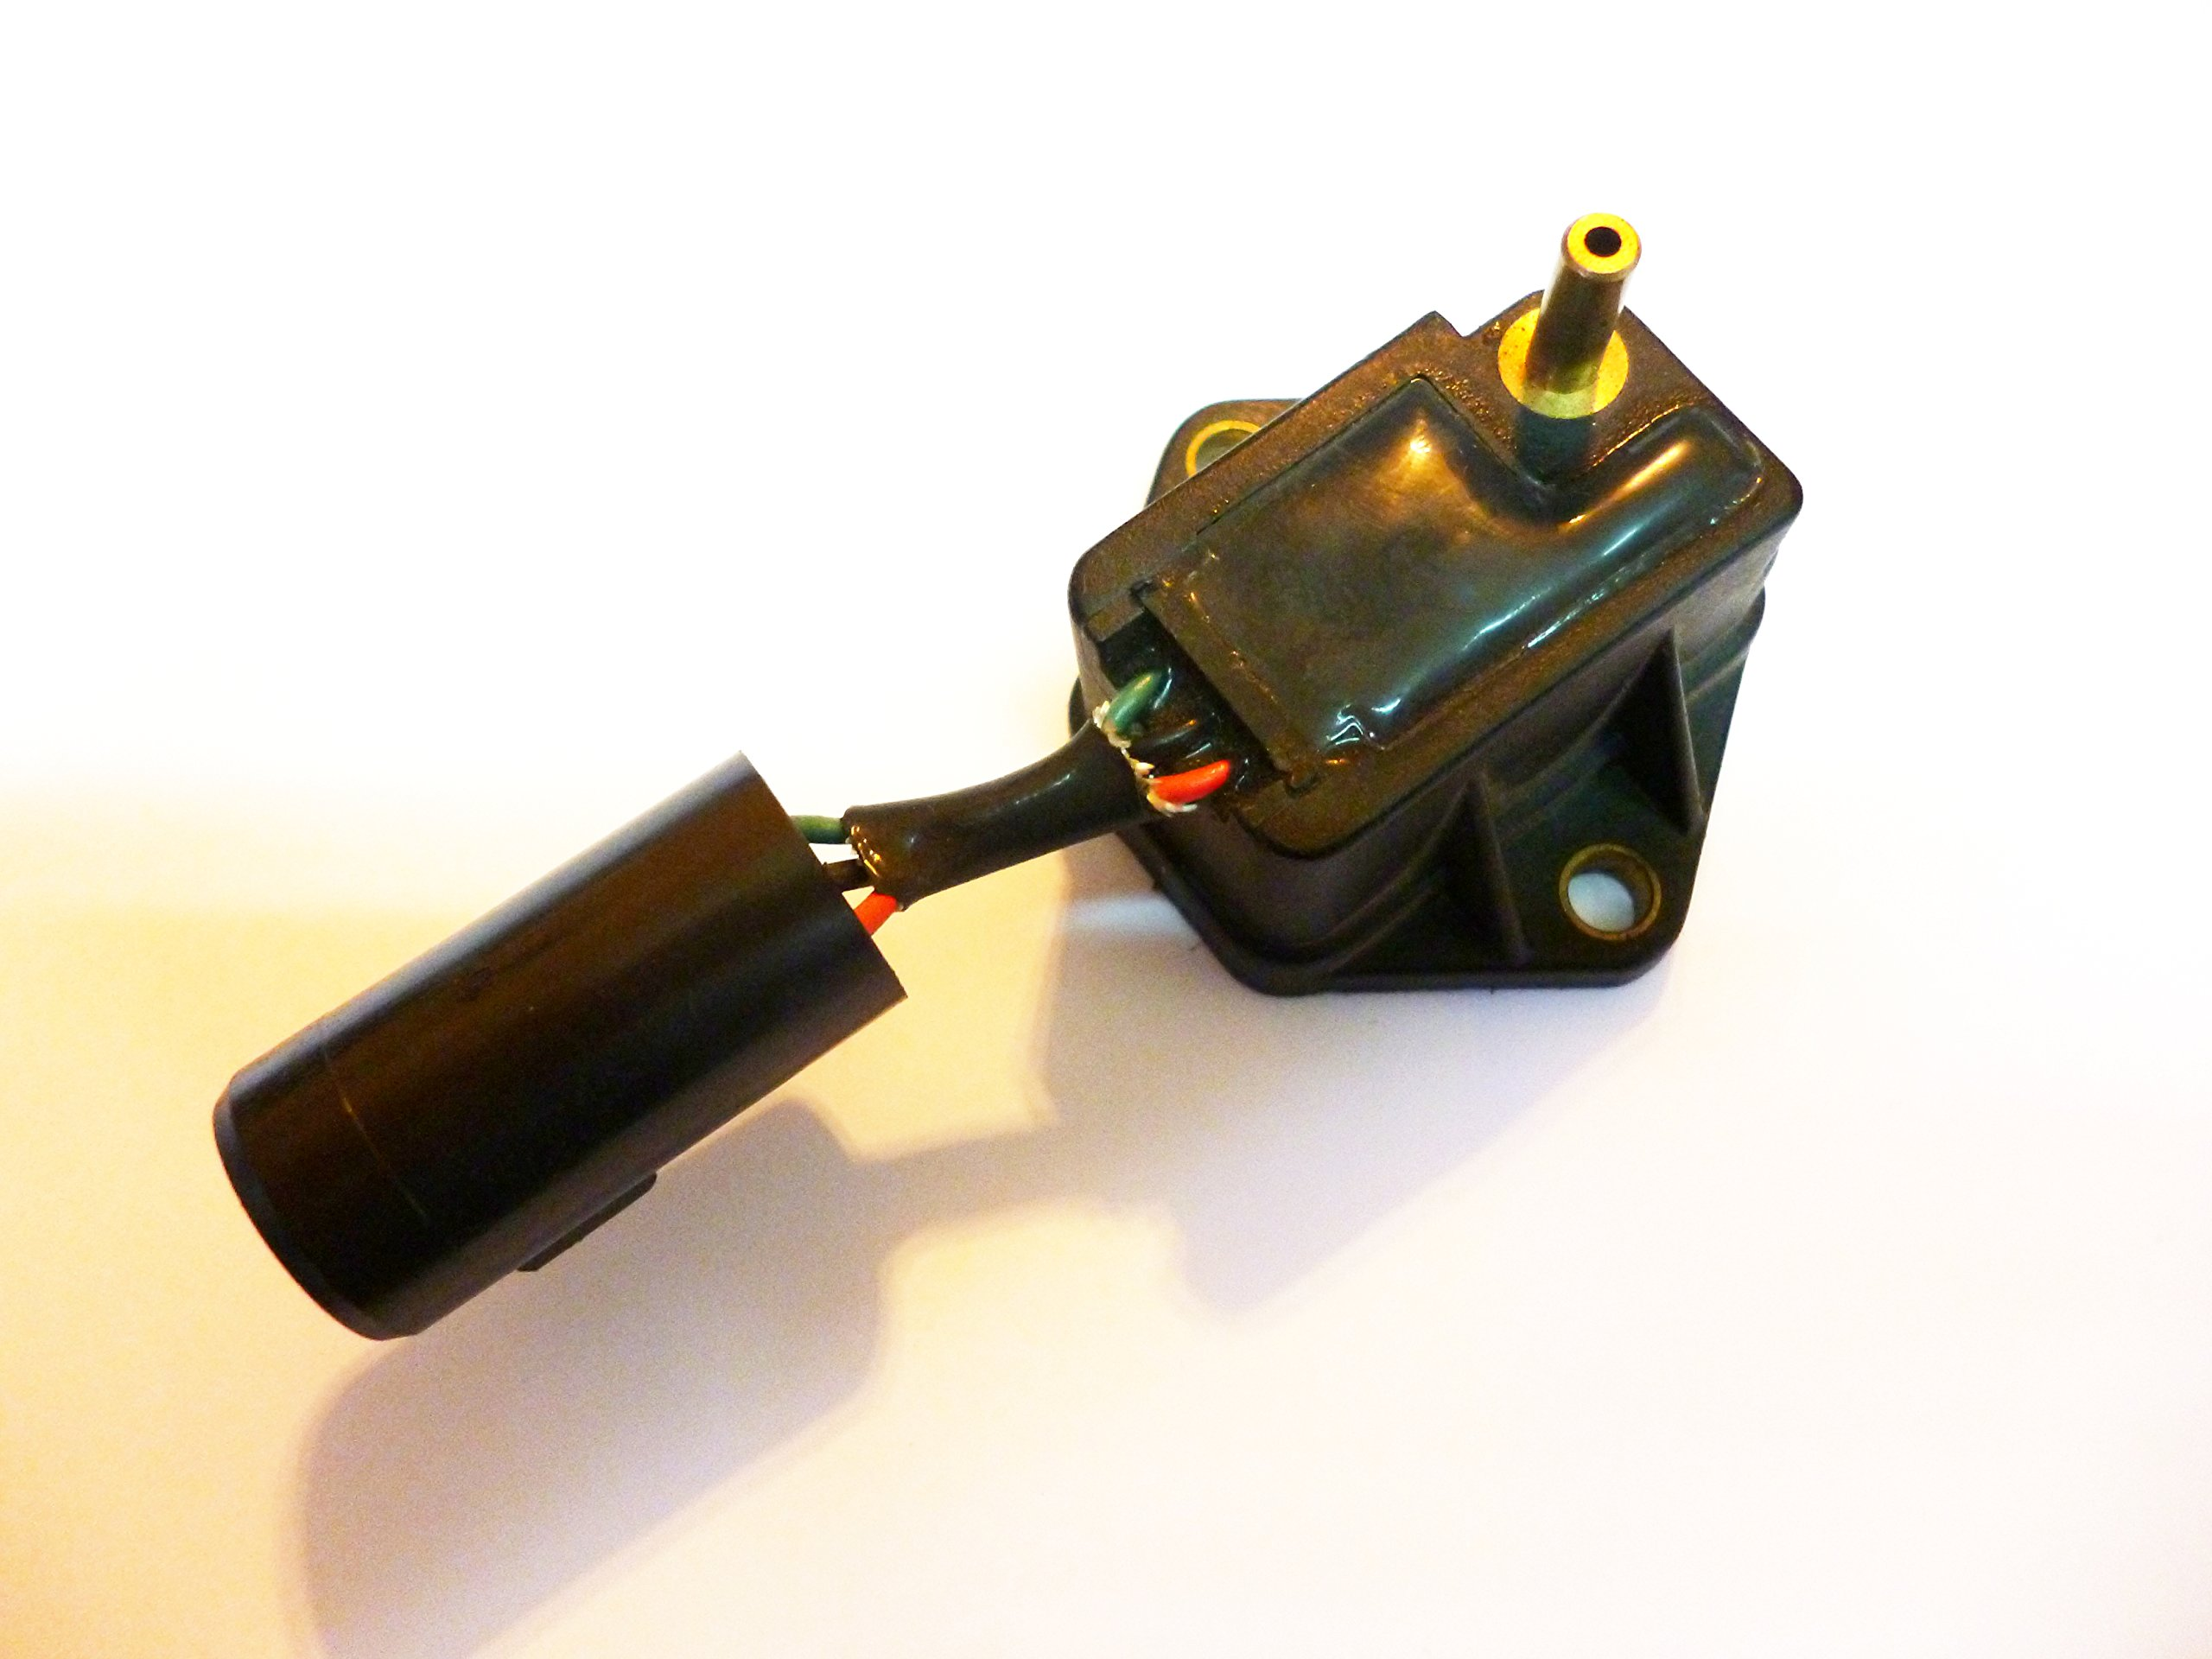 ACURA INTEGRA HONDA CIVIC CRX MAP Sensor 88-91 NEW OEM STANDARD AS34 by Standard Motor Products